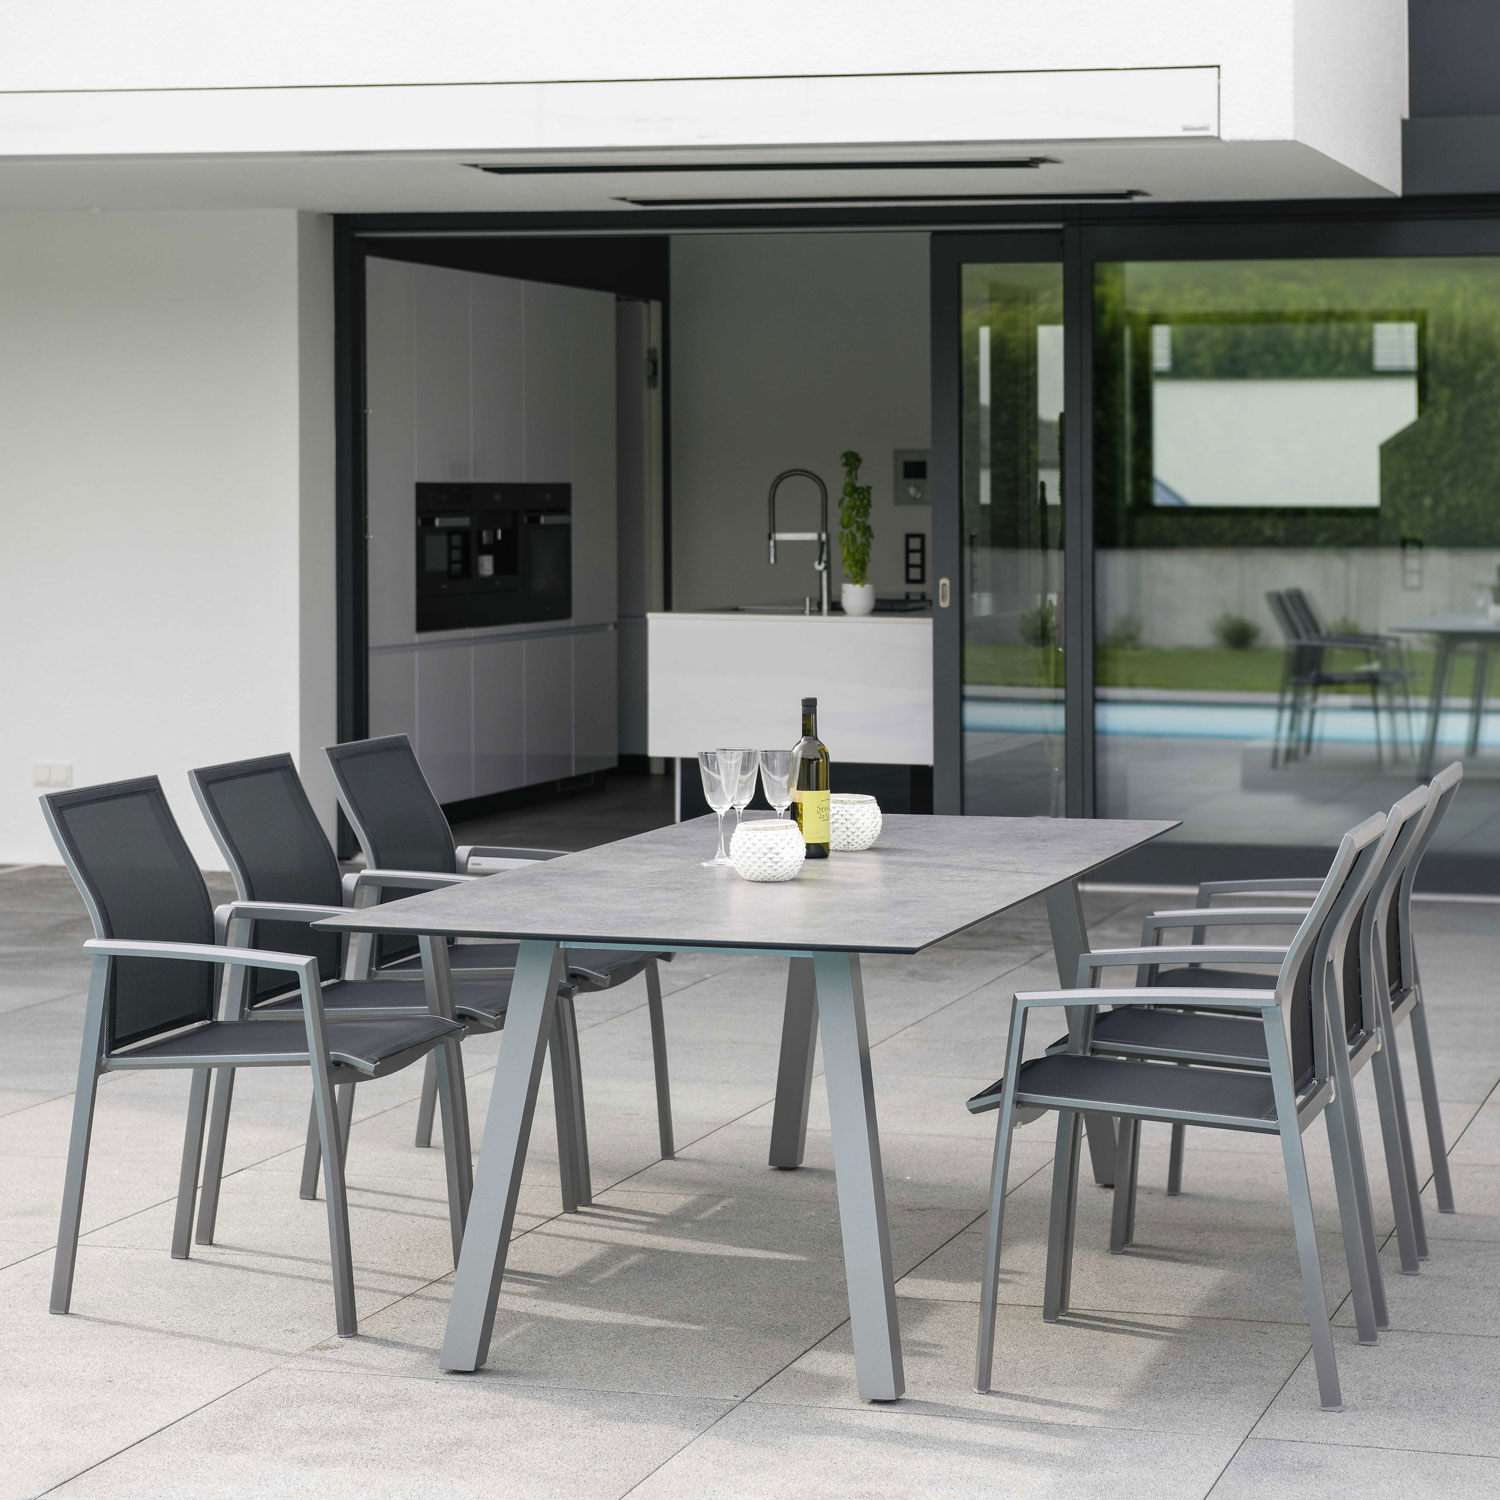 Interno Outdoor Table 220X100cm Square Tube Aluminum Graphite Table Top Silverstar Vintage Stone by Outdoor Living